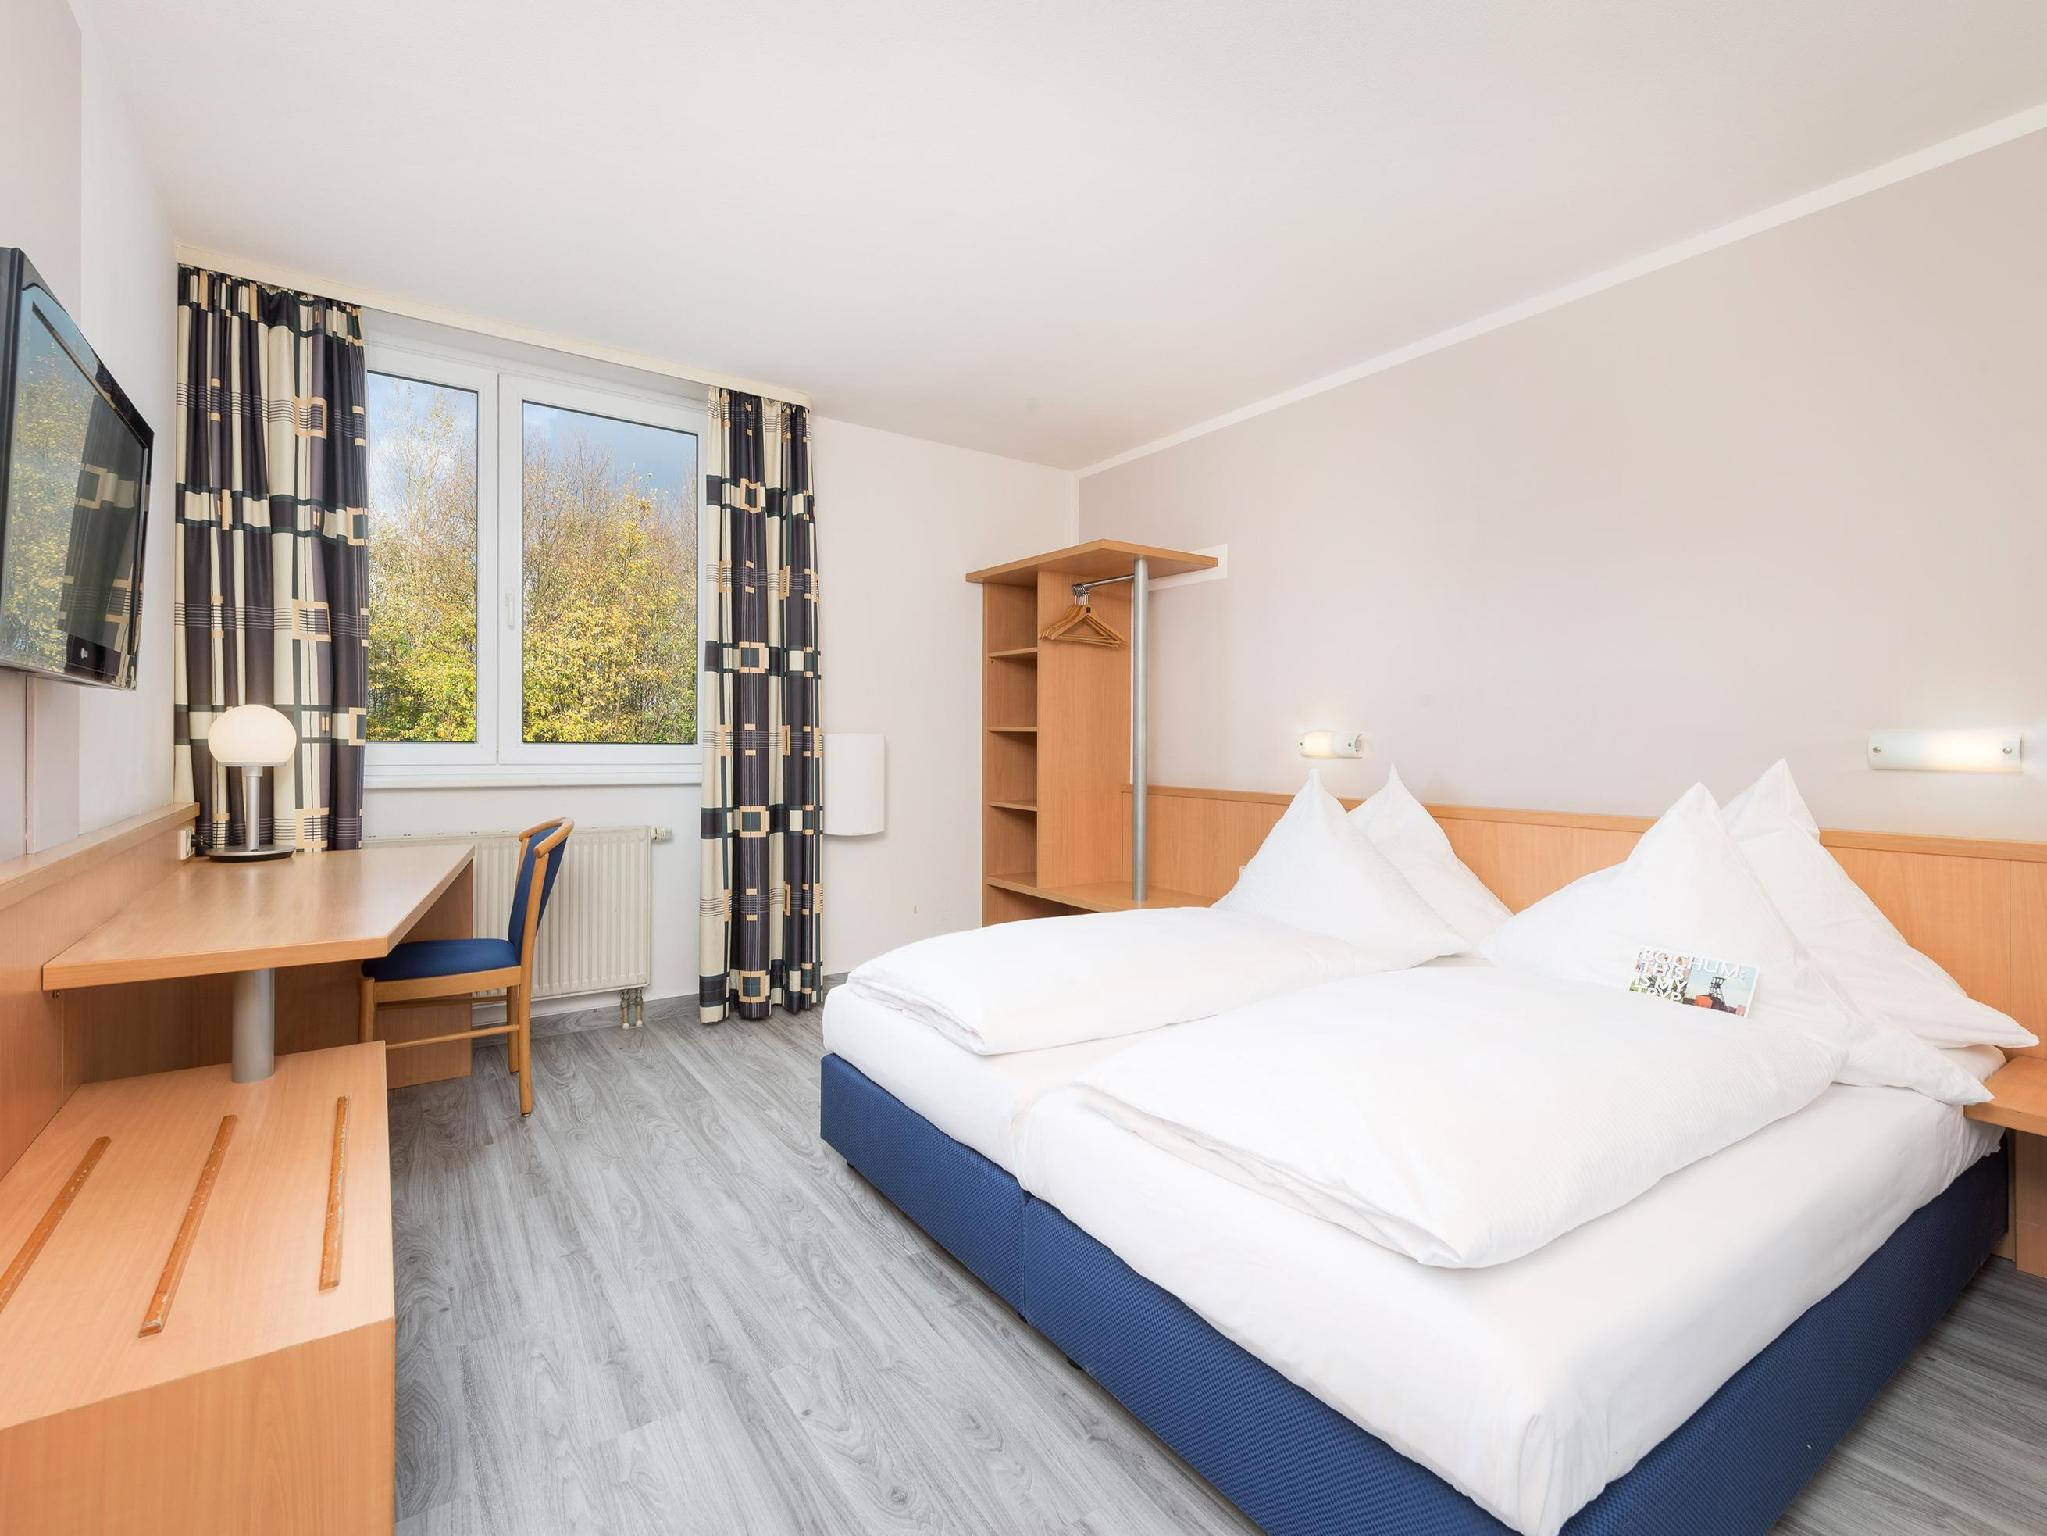 Tapeten Bochum Tryp Bochum-wattenscheid Hotel In Germany - Room Deals, Photos & Reviews